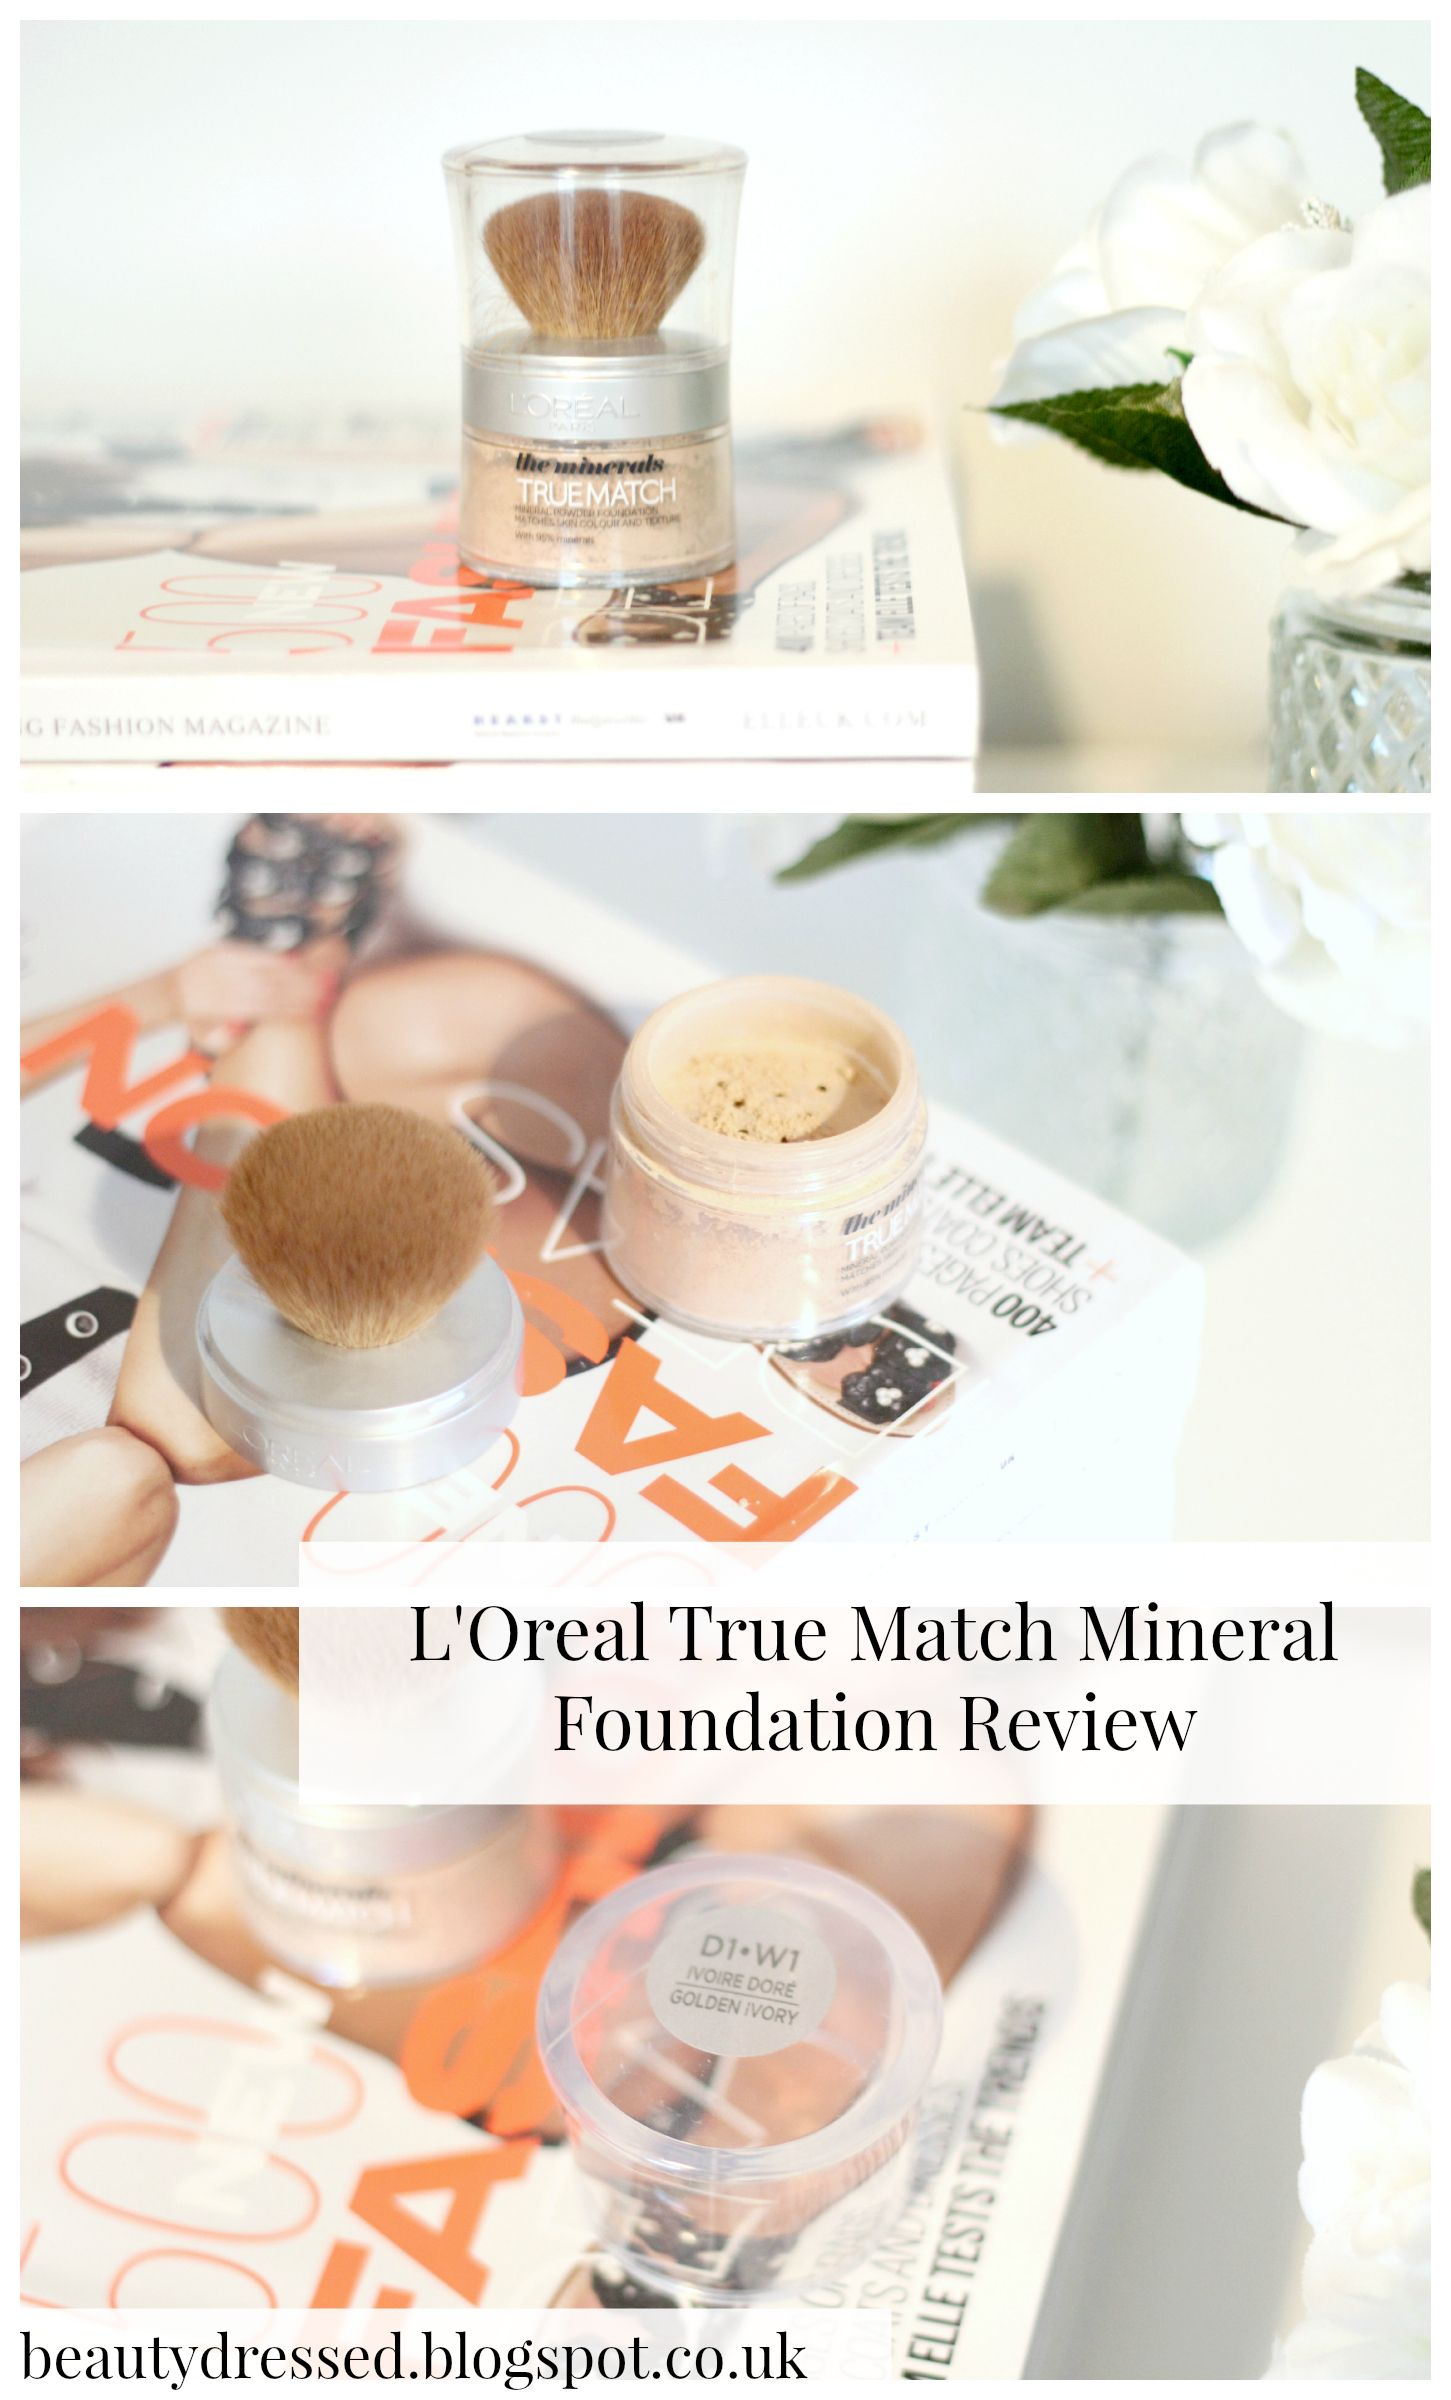 Powder Foundation For Oily Skin L'Oreal True Match